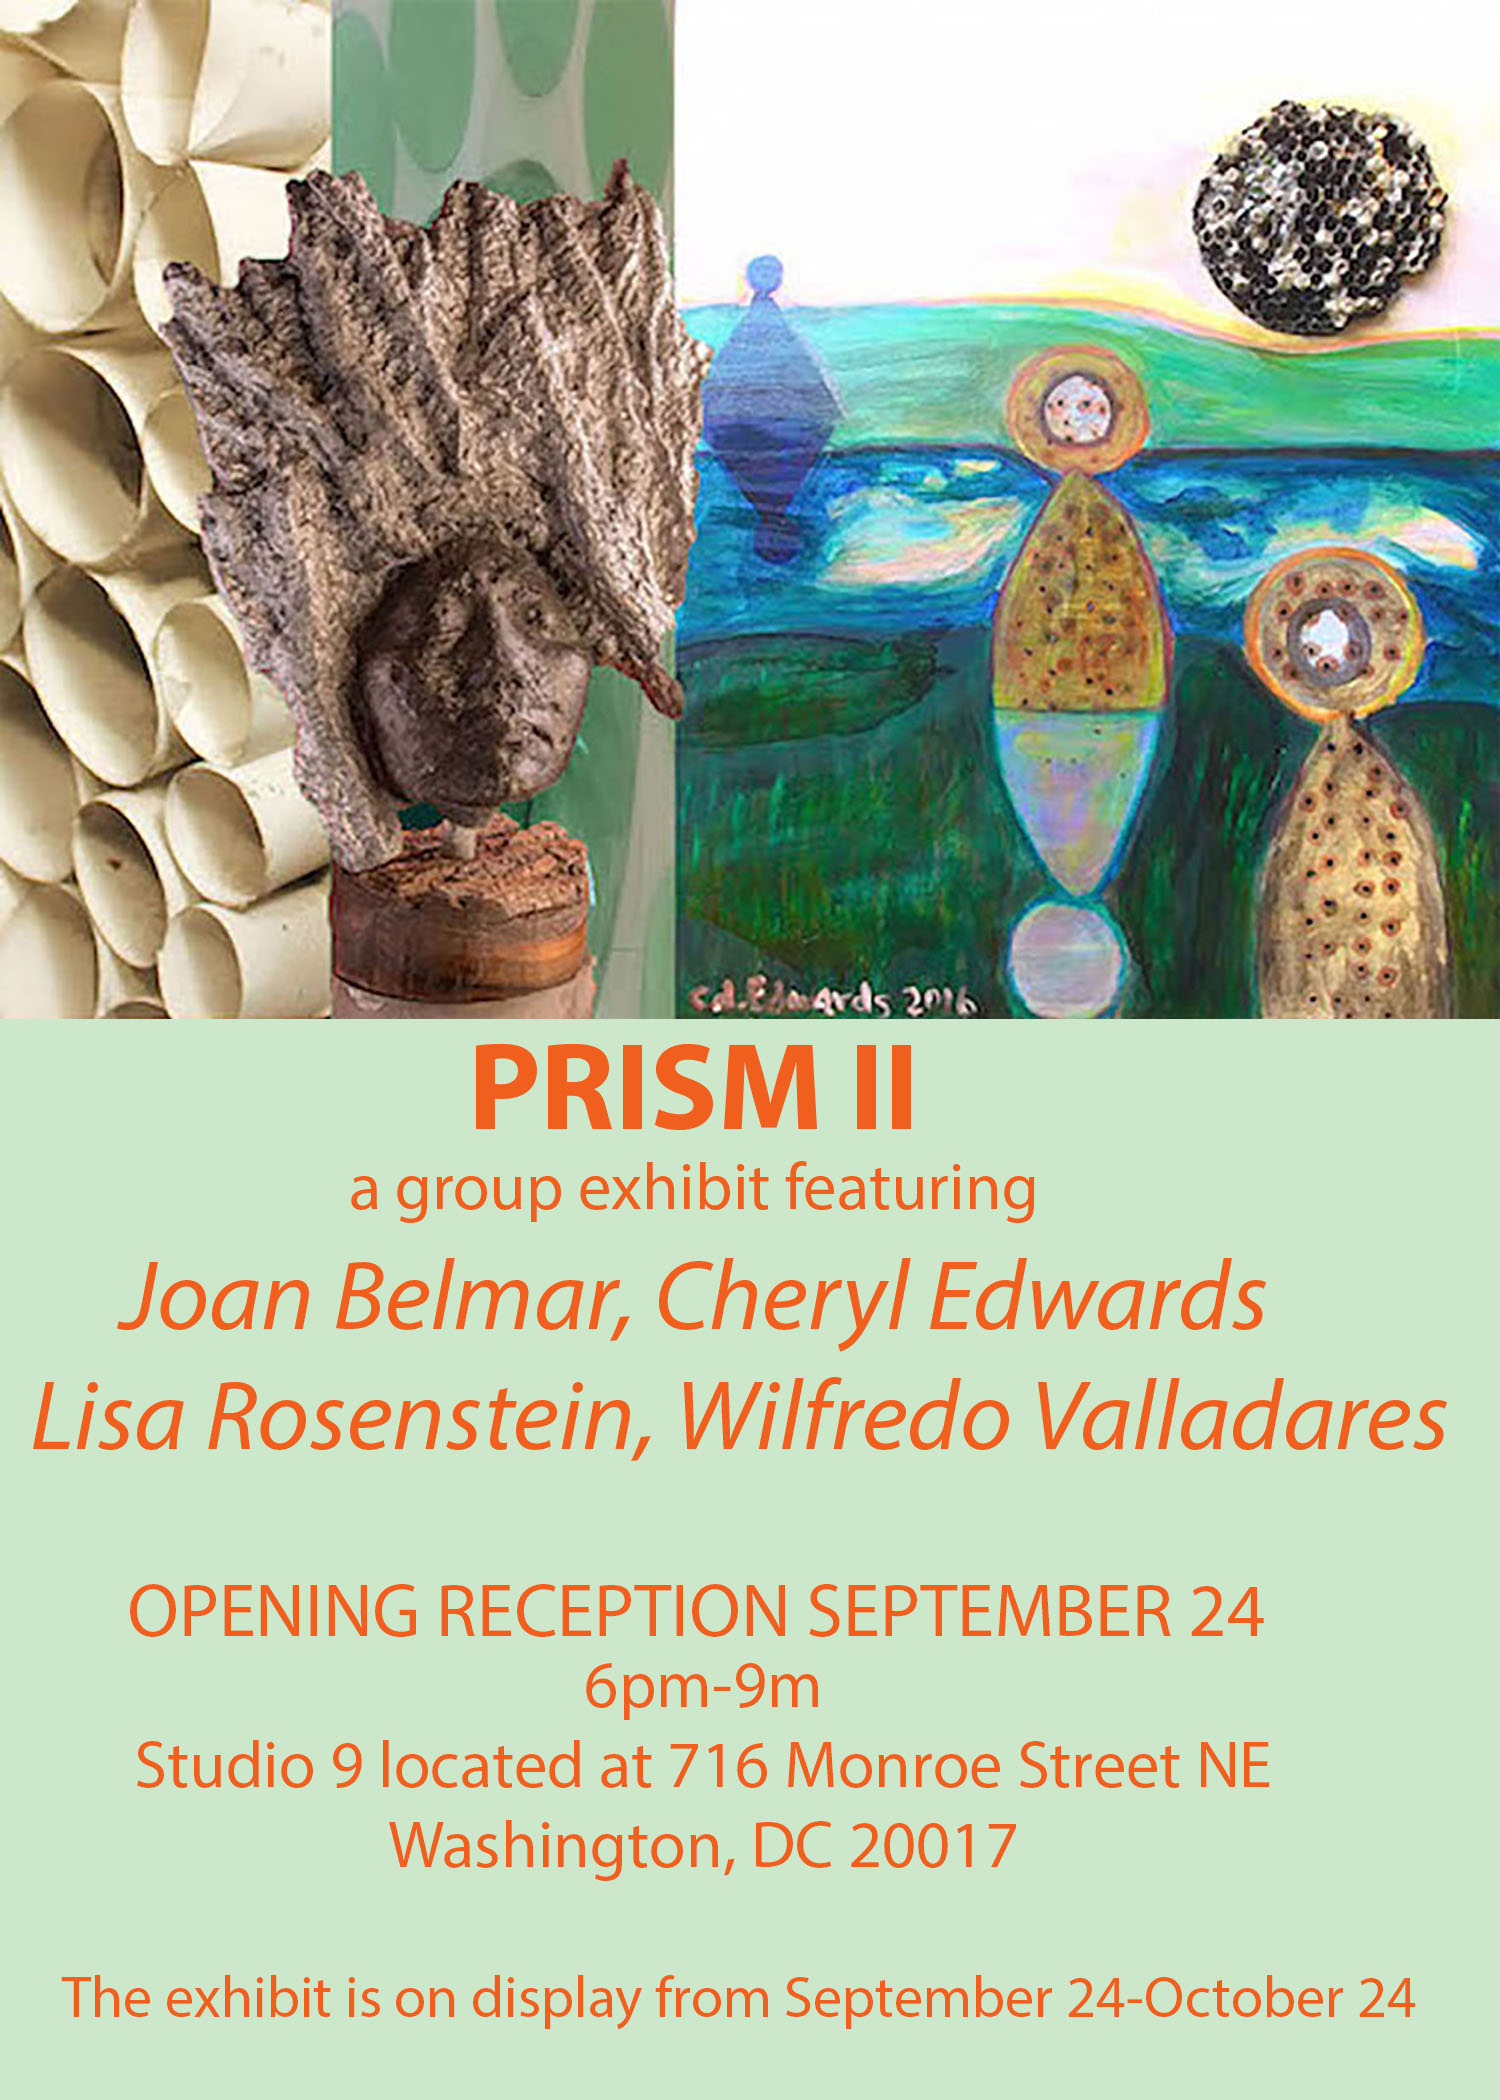 Cheryl Edwards Studio: Prism II - Group Exhibit